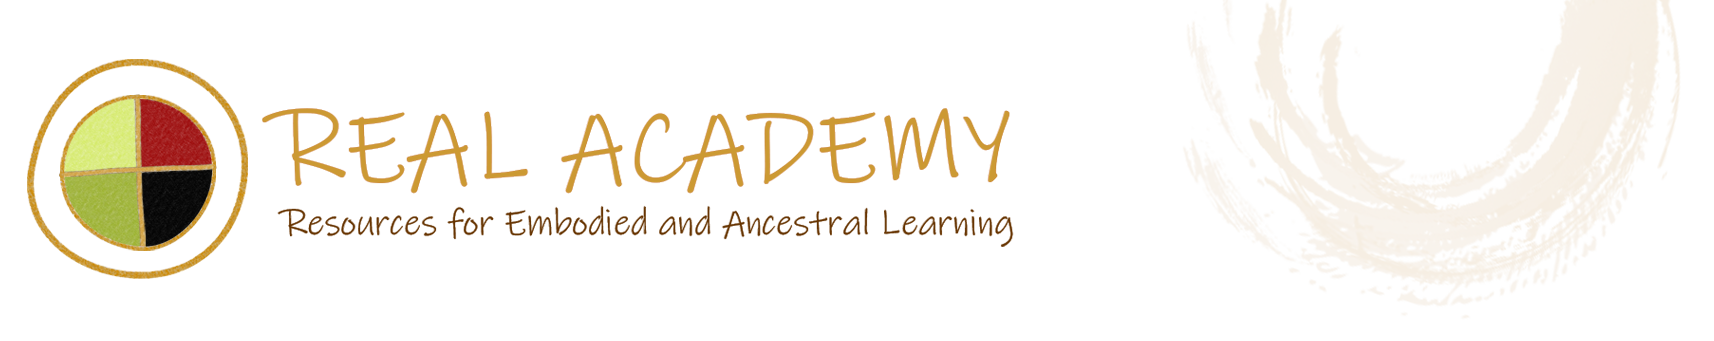 REAL Academy